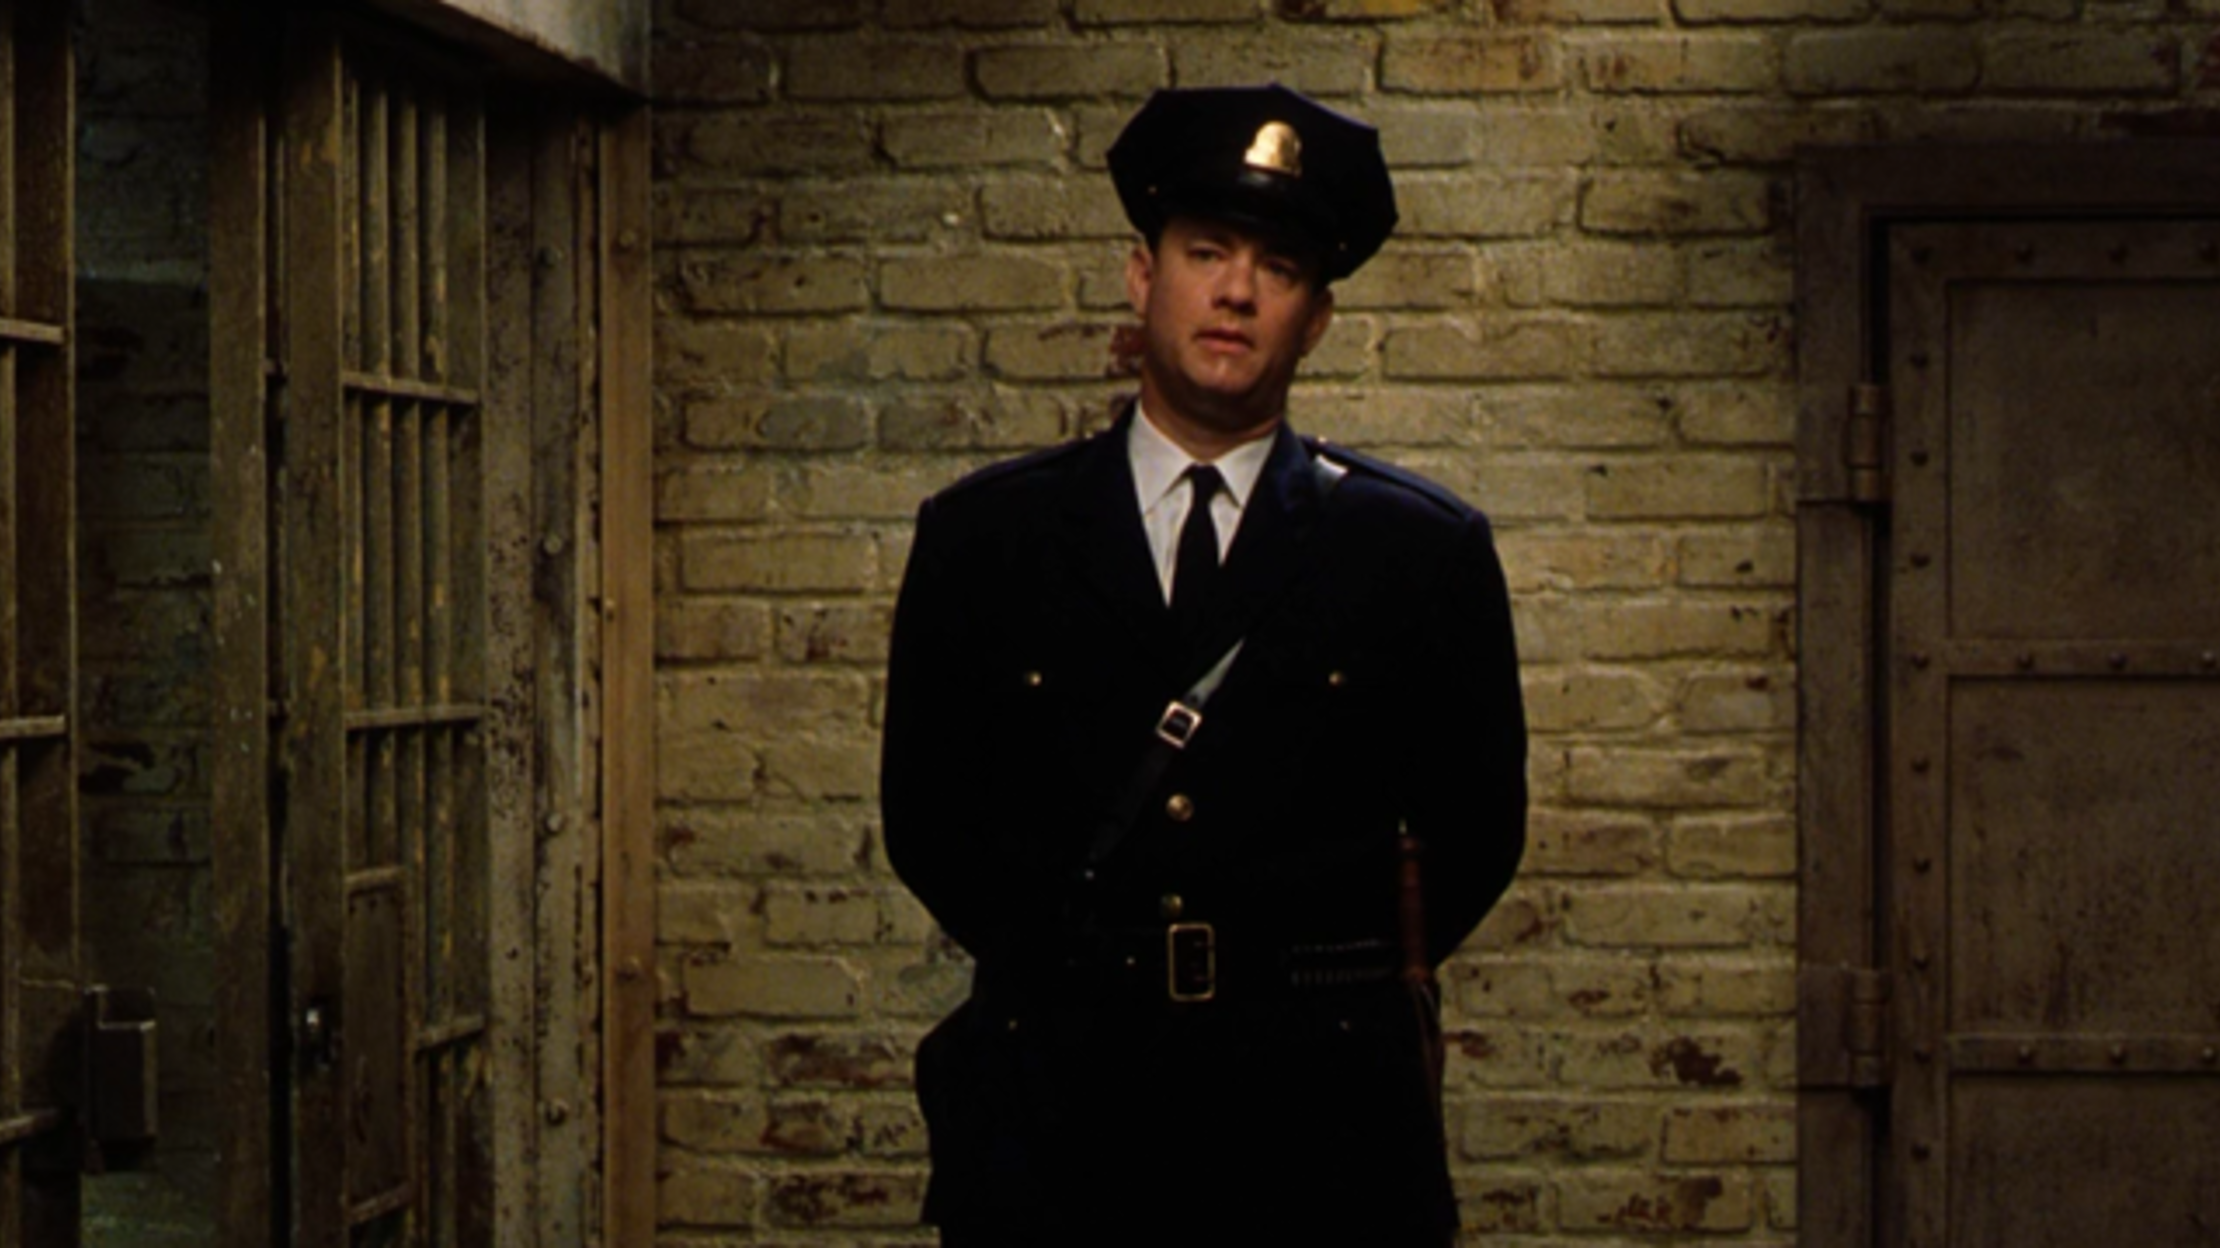 15 Things You Might Not Know About The Green Mile Mental Floss